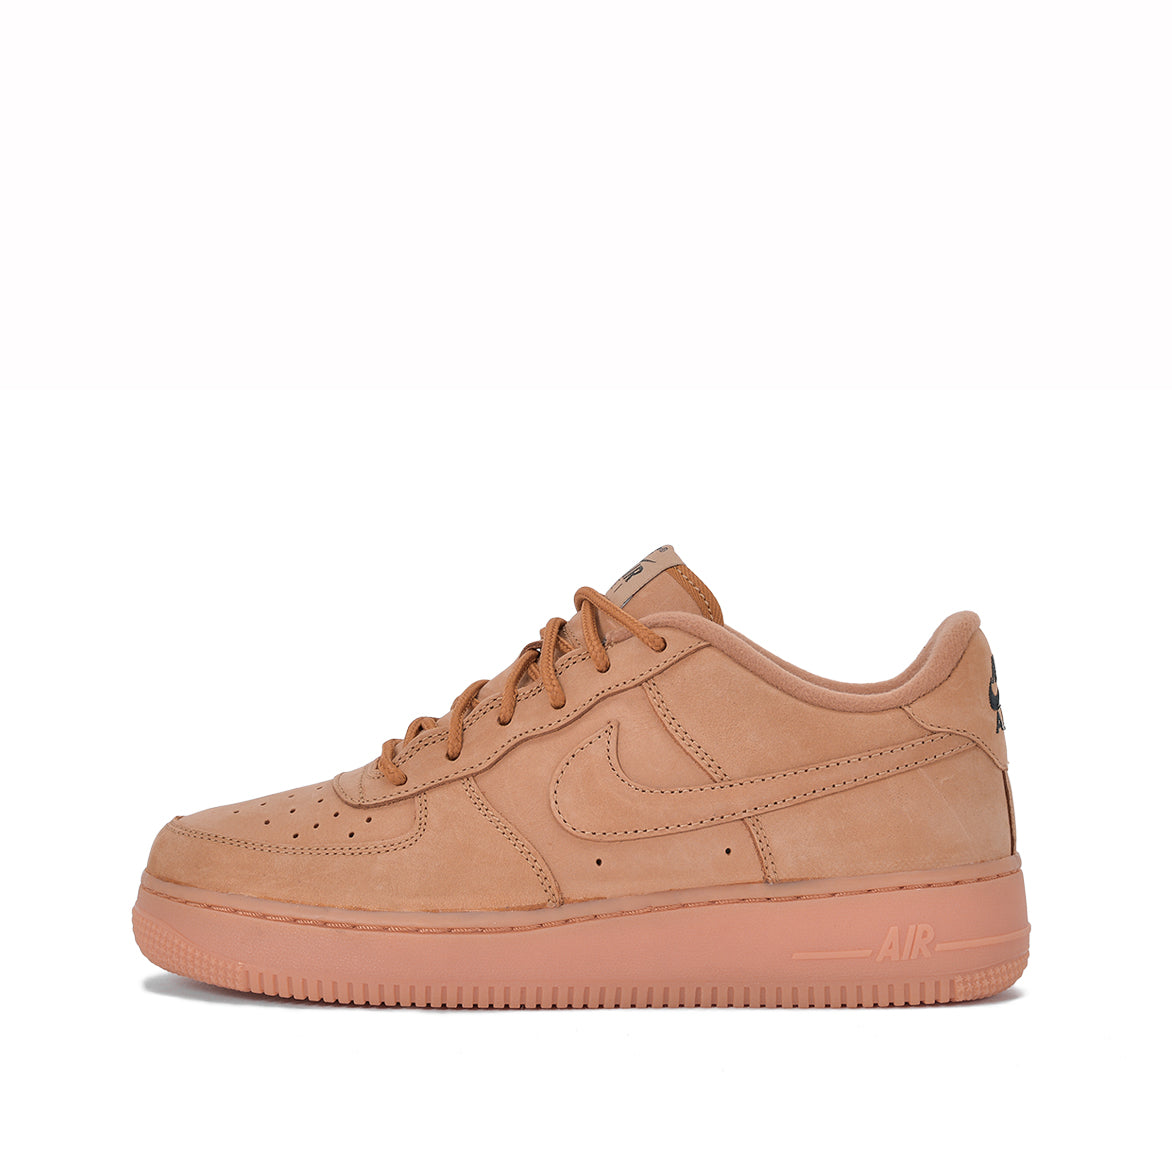 "AIR FORCE 1 WINTER PRM (GS) ""FLAX"""